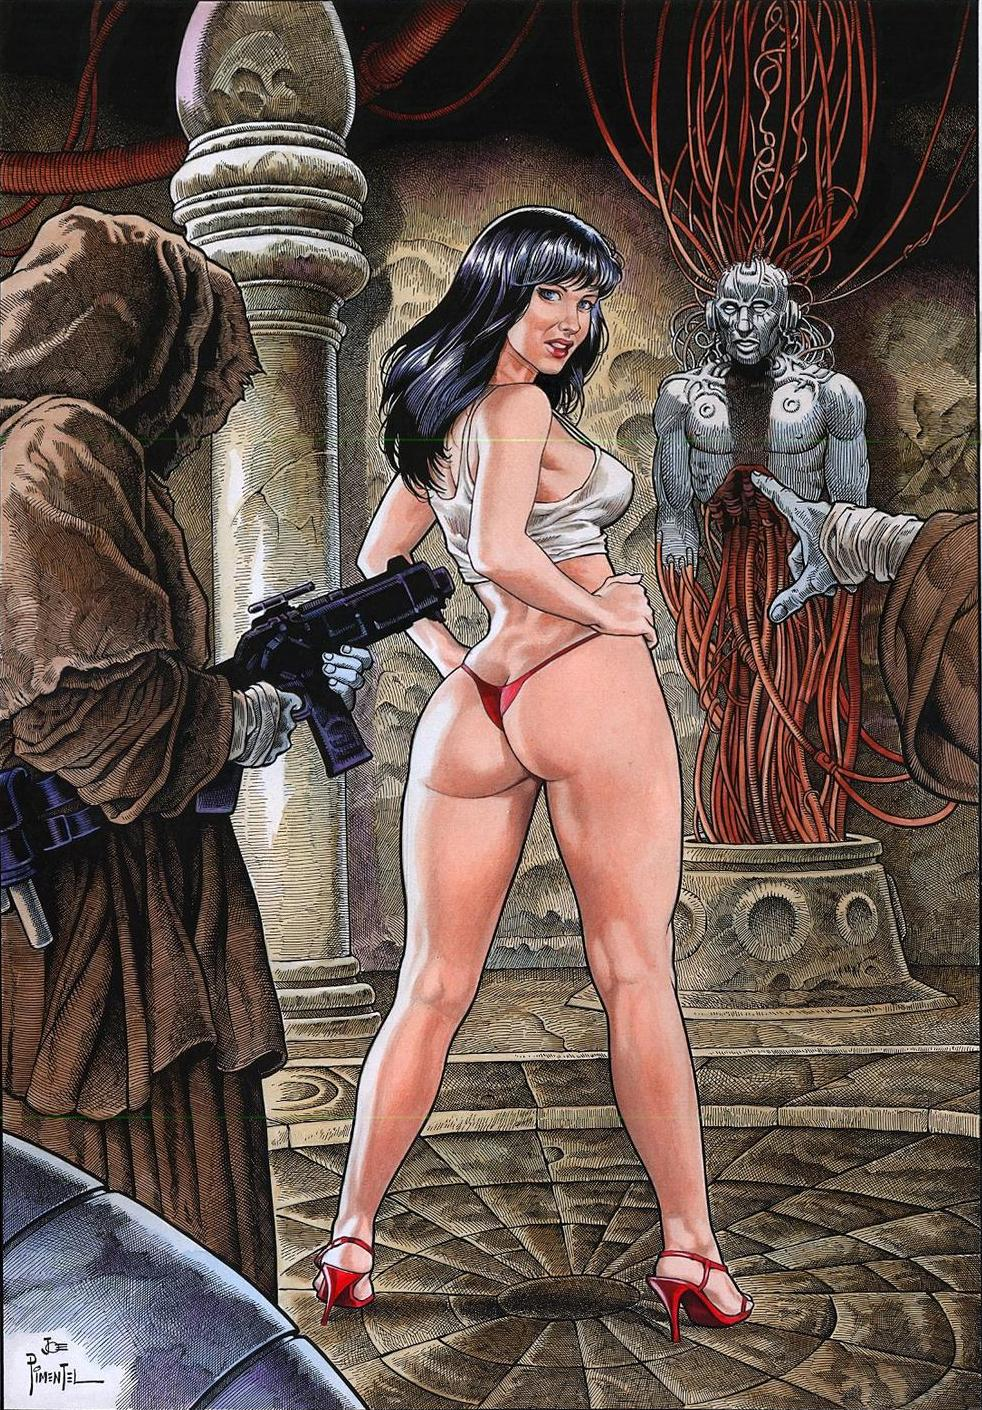 Druuna's role is that of a willing sexual object, submitting to sexual advances of all kinds with little or no complaint, other than the occasional sad pout, though she has been raped on more than one occasion in the series.